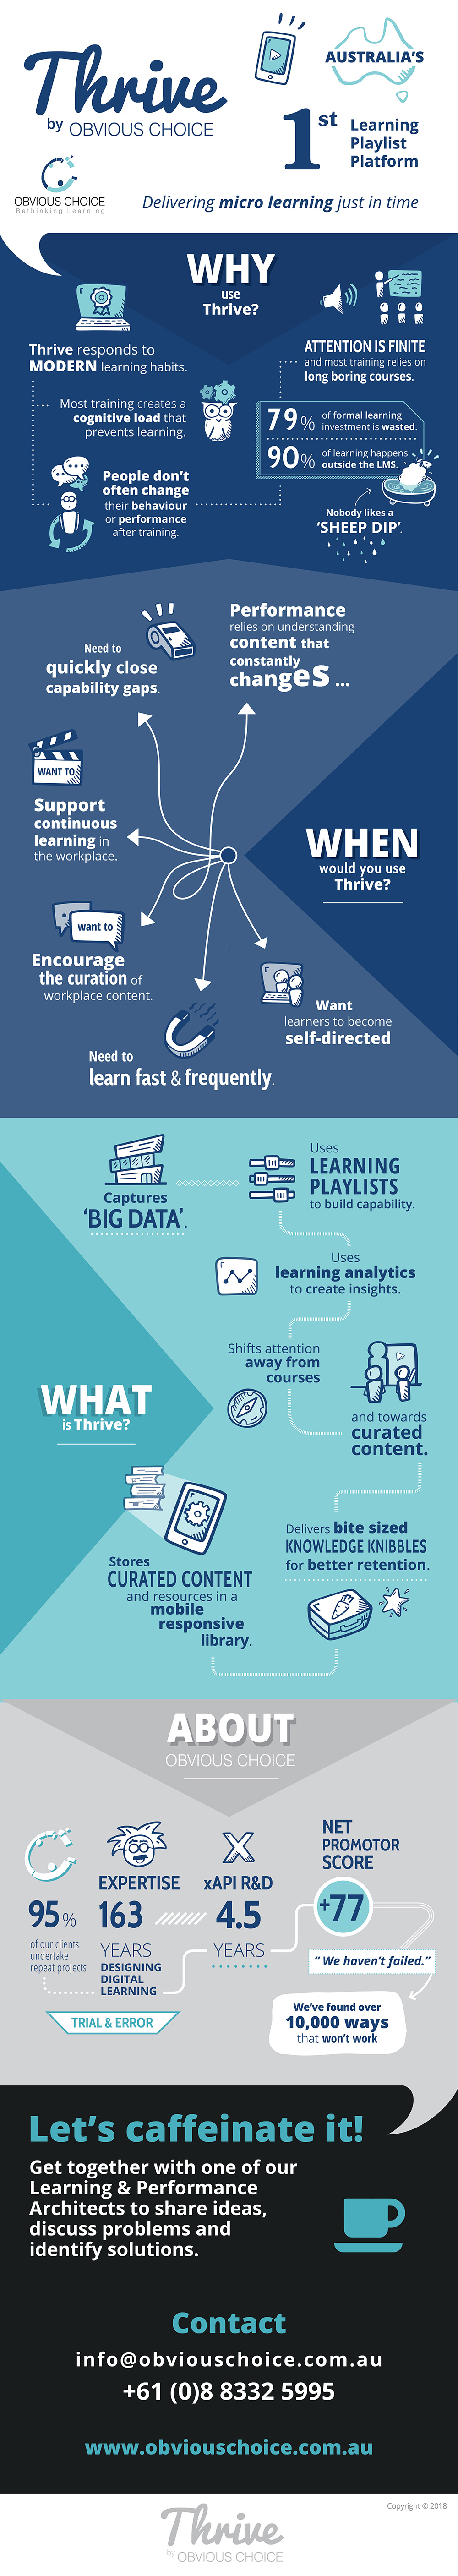 Thrive learning playlist platform Infographic by Obvious Choice